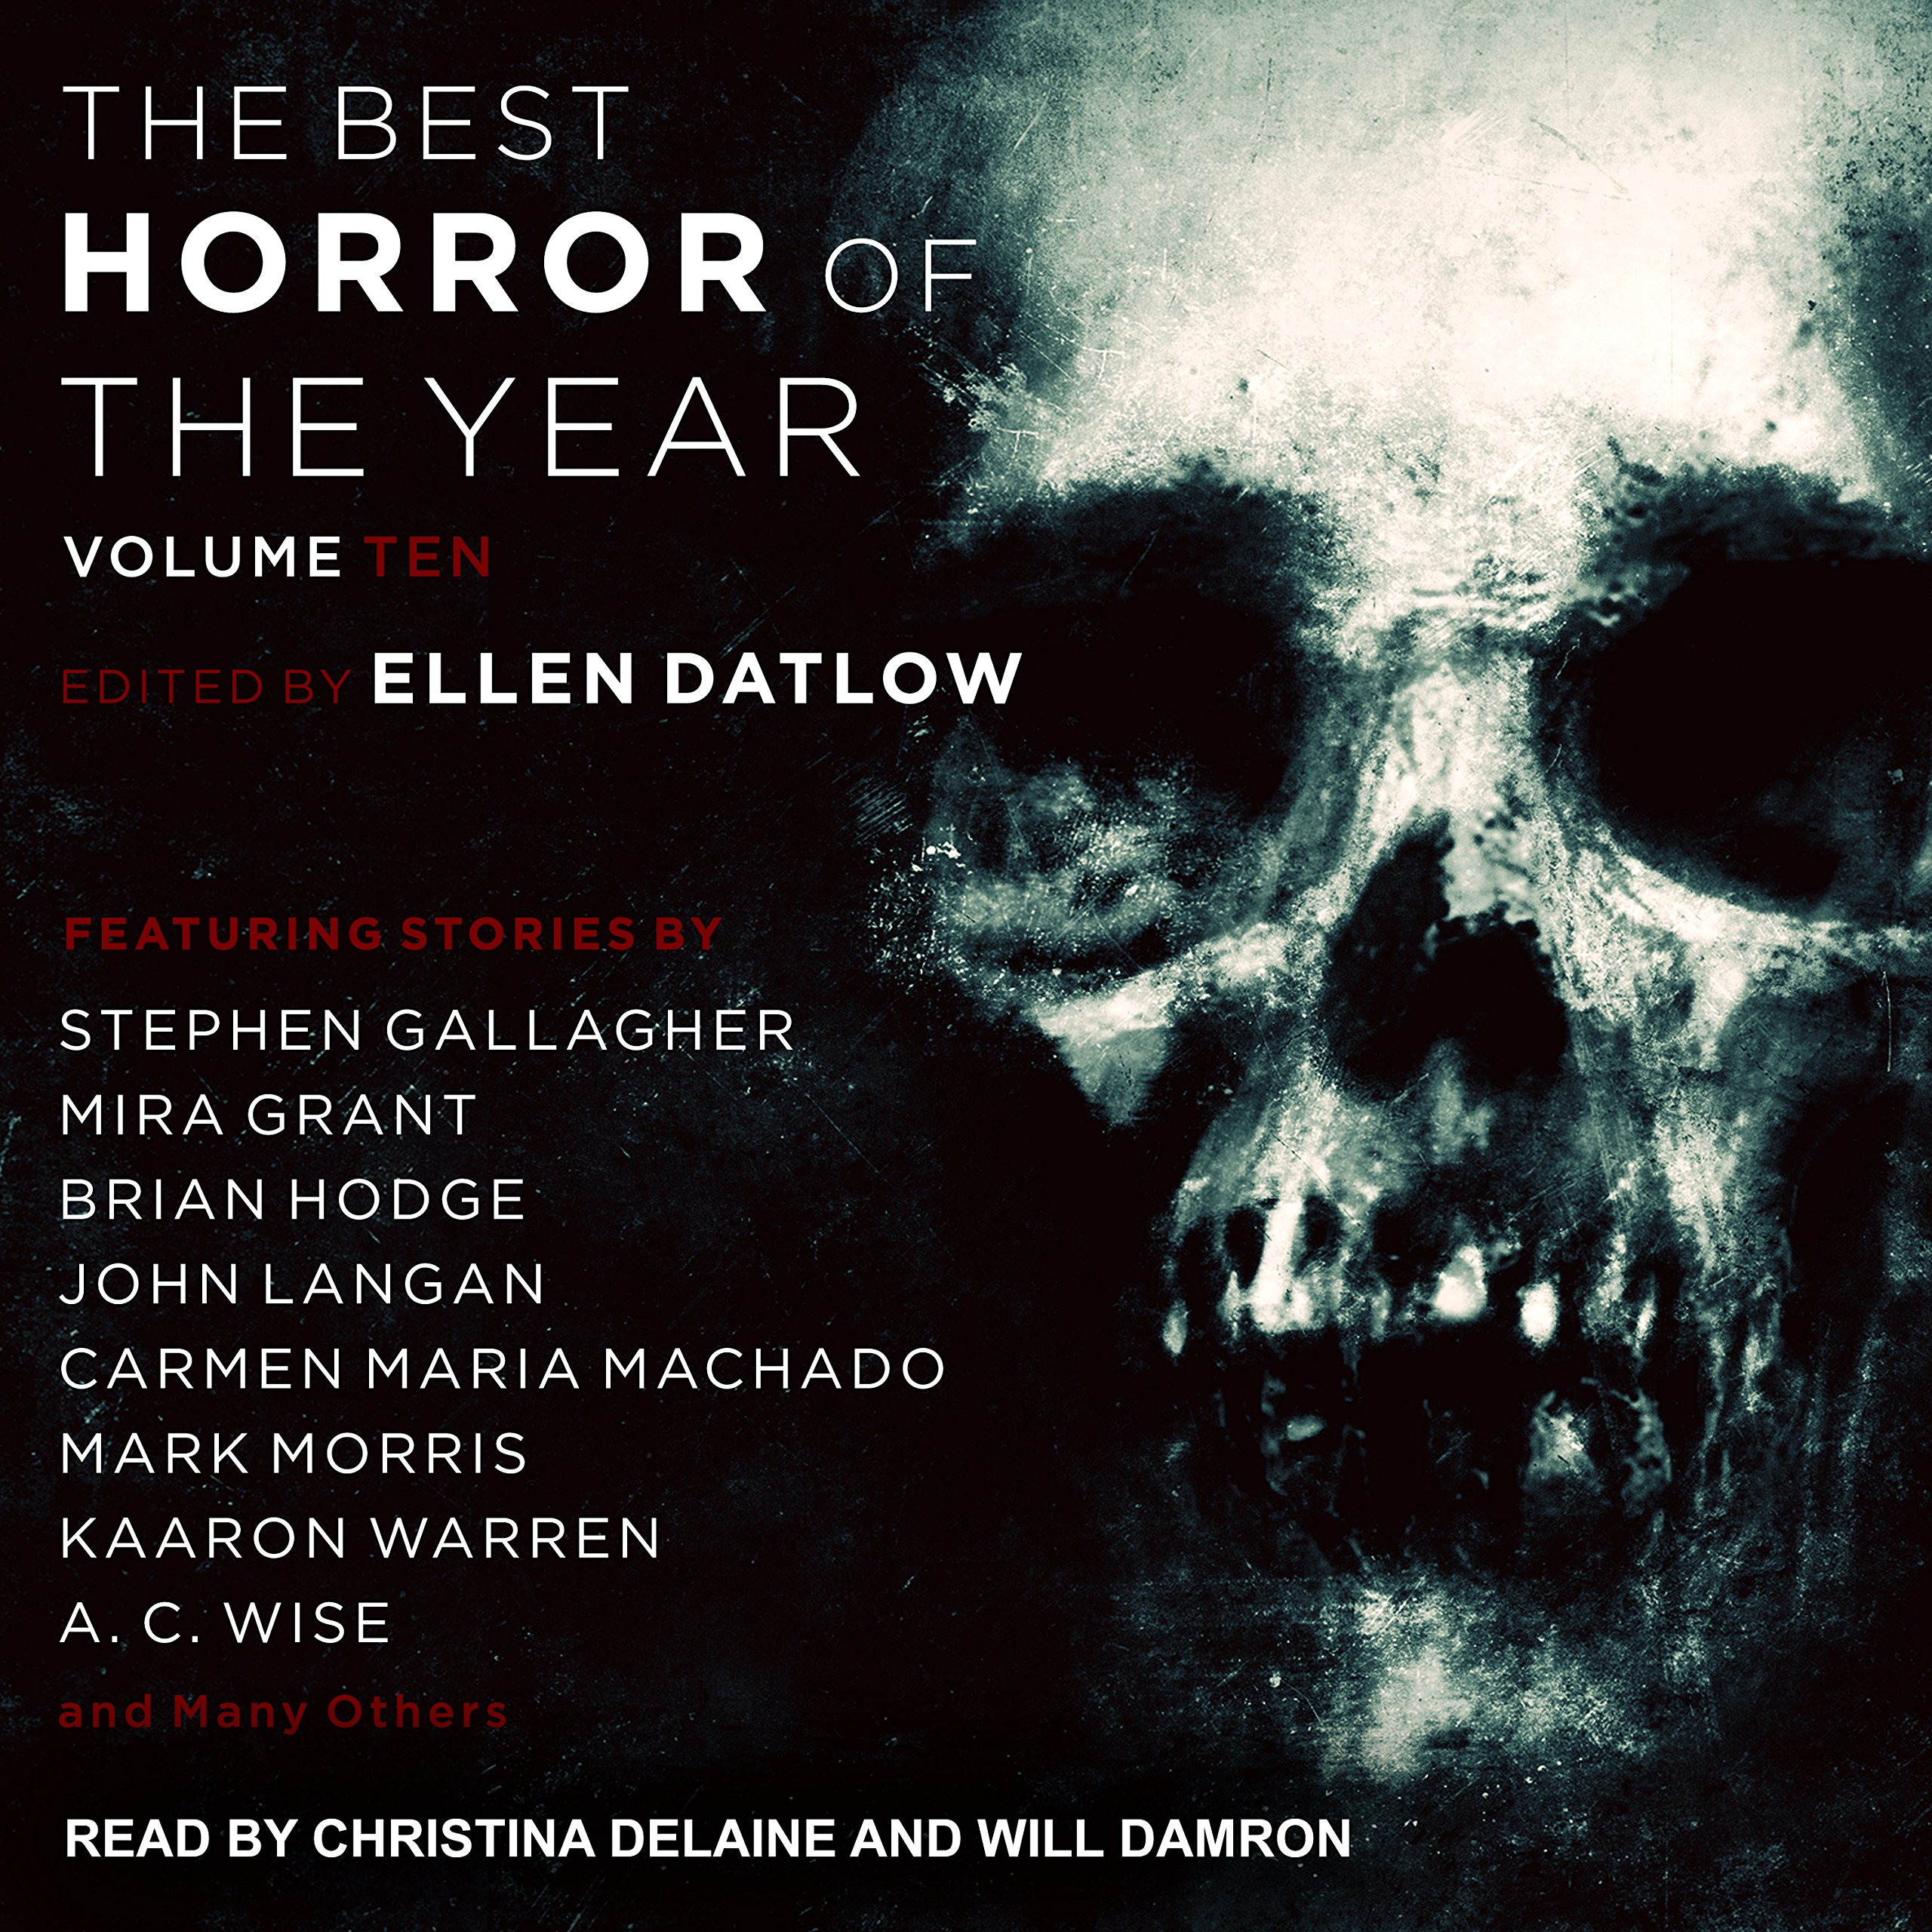 Best Horror of the Year Volume 10: Amazon.es: Ellen Datlow, Will Damron, Christina Delaine: Libros en idiomas extranjeros